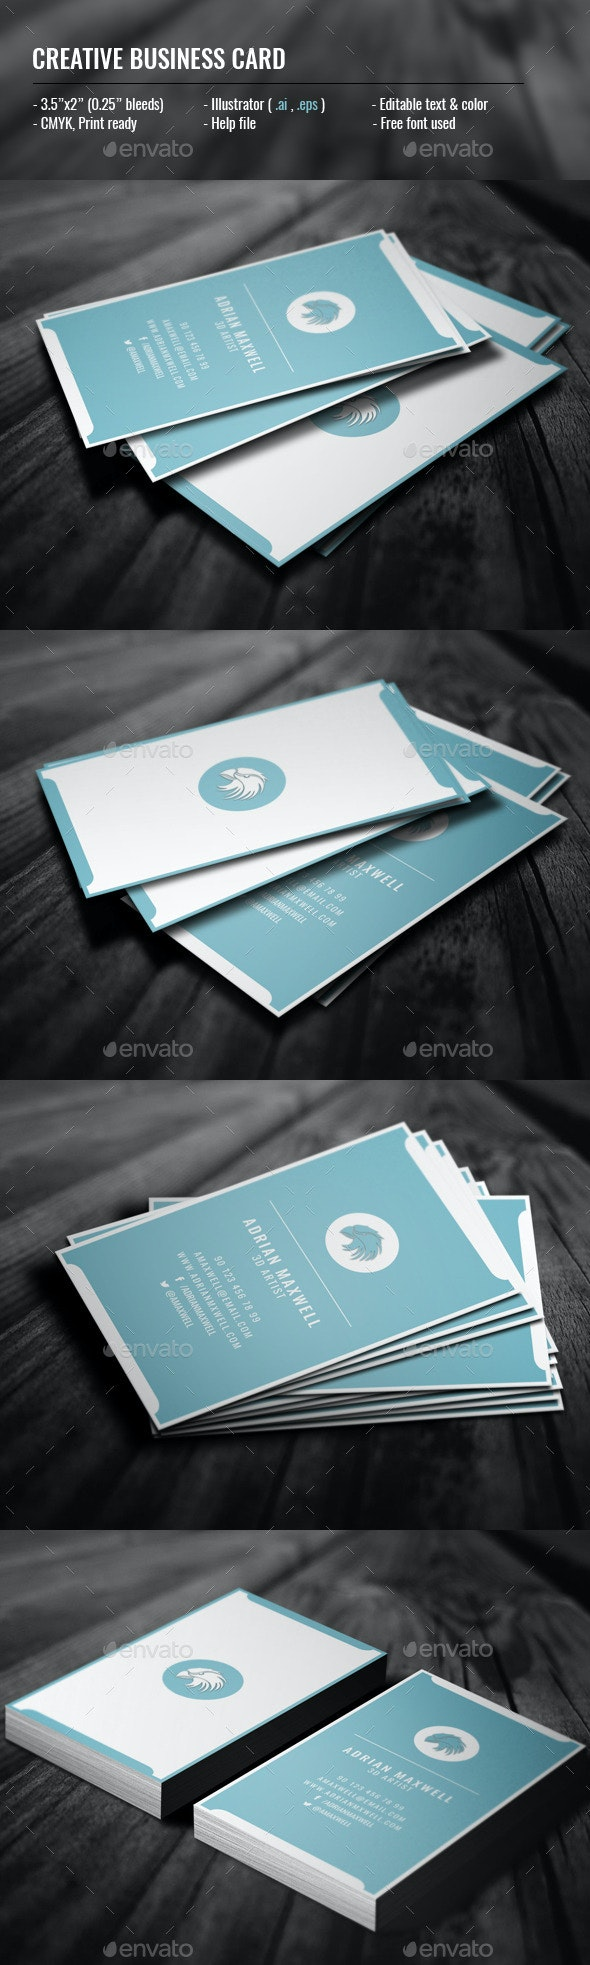 Creative Vertical Business Card - Creative Business Cards